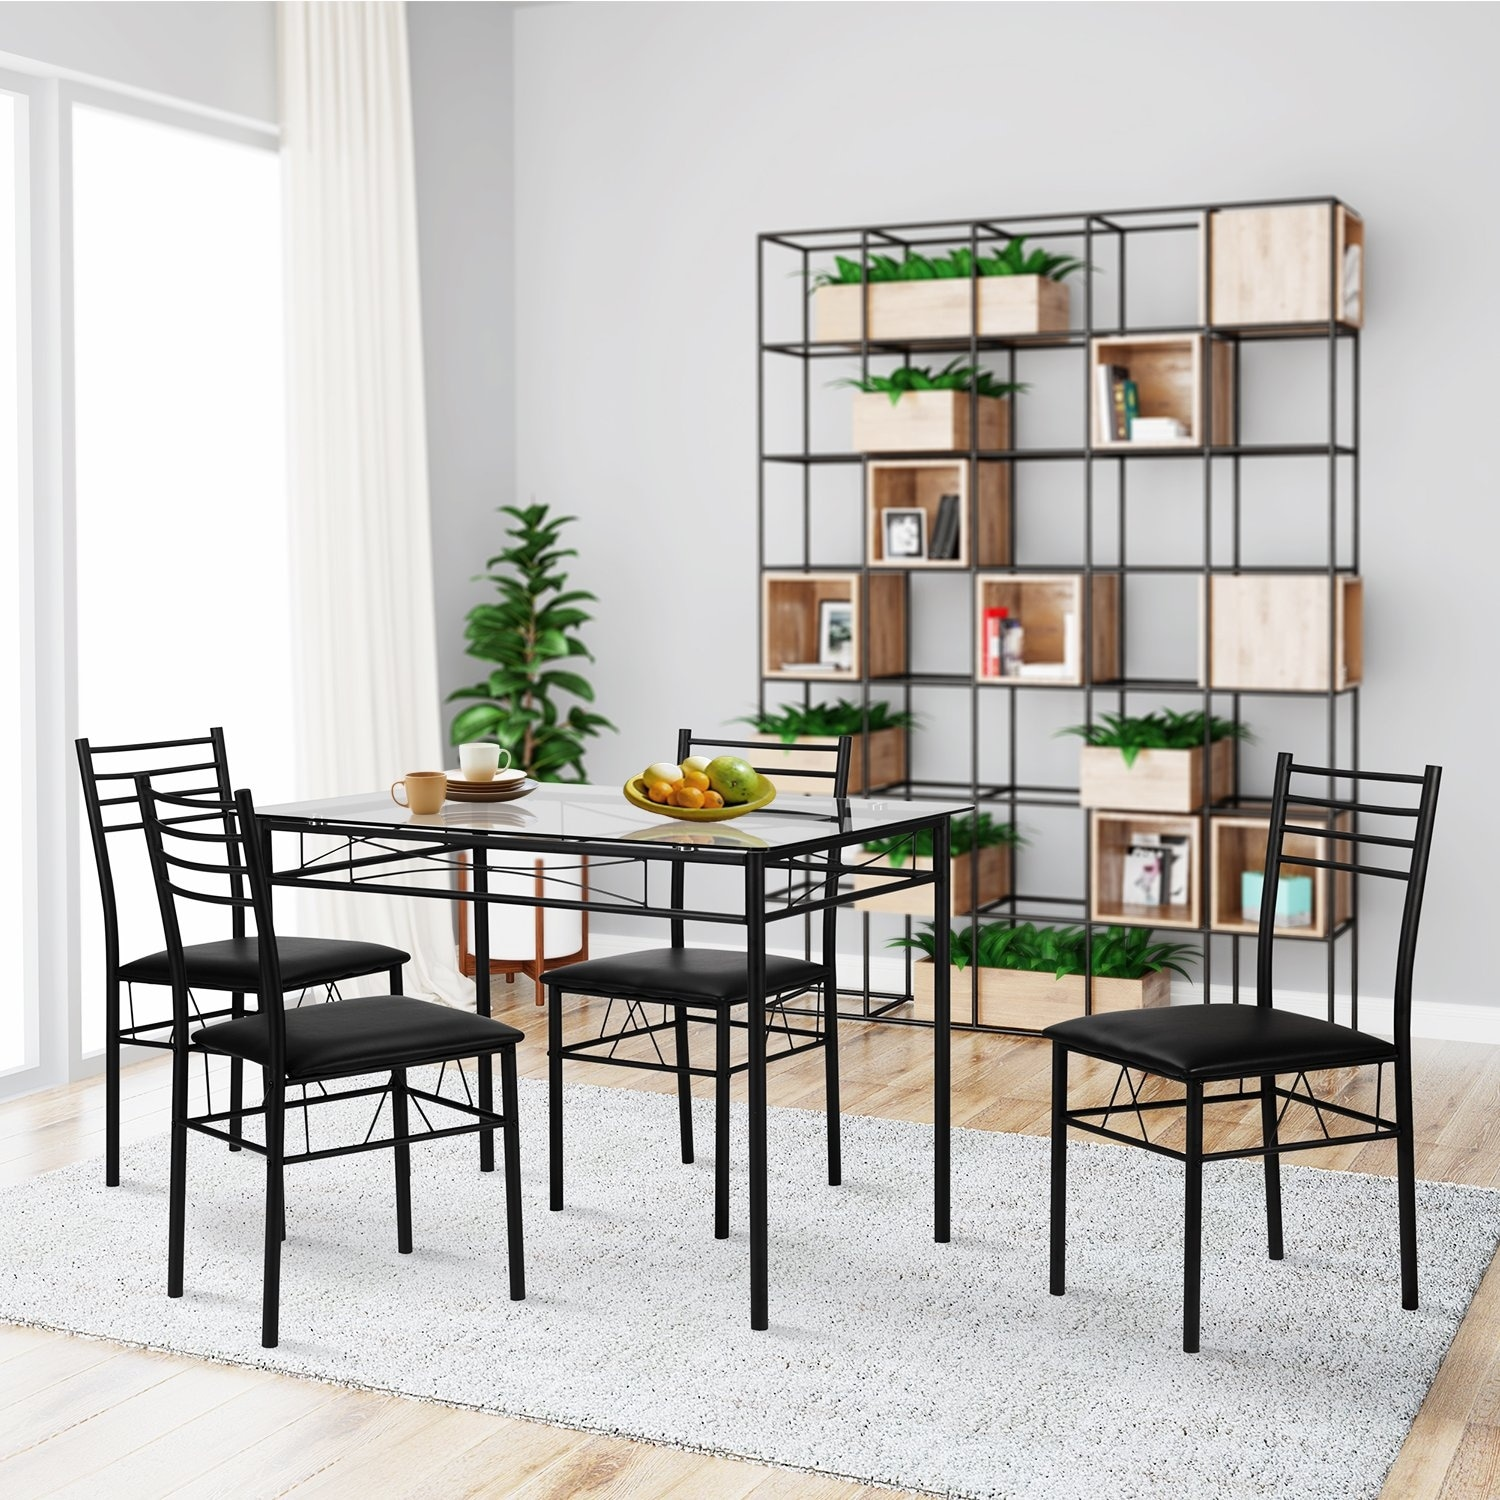 Glass Dining Table And Chairs Vecelo Dining Table Sets Glass Table With 4 Chairs Metal Kitchen Room Furniture 5 Pcs